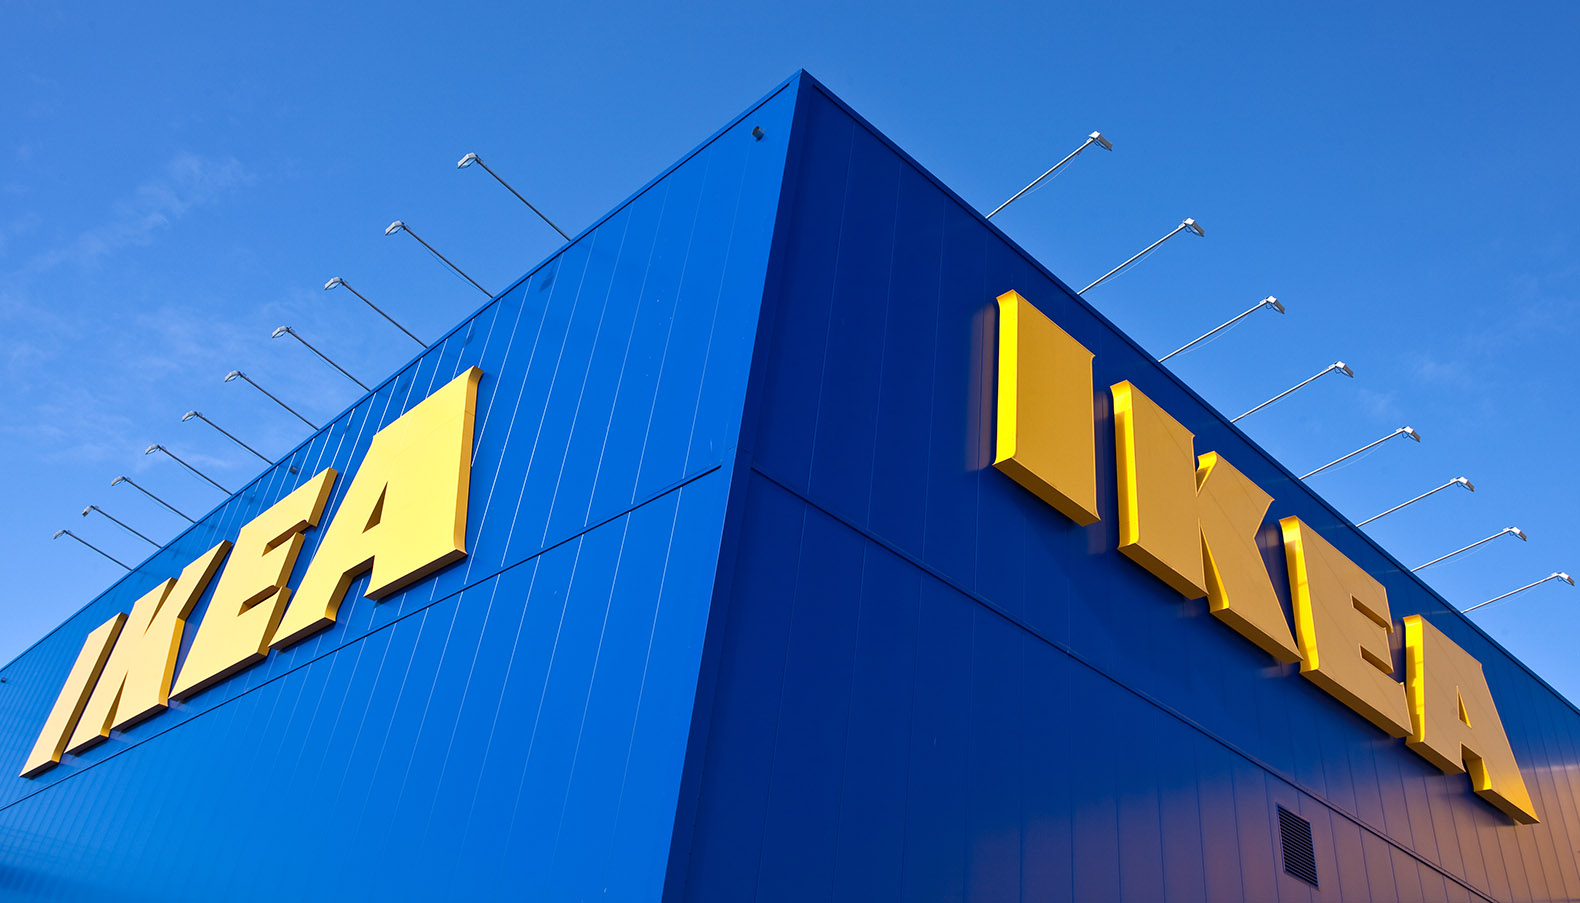 ikea starts solar panel sales in uk stores inhabitat. Black Bedroom Furniture Sets. Home Design Ideas